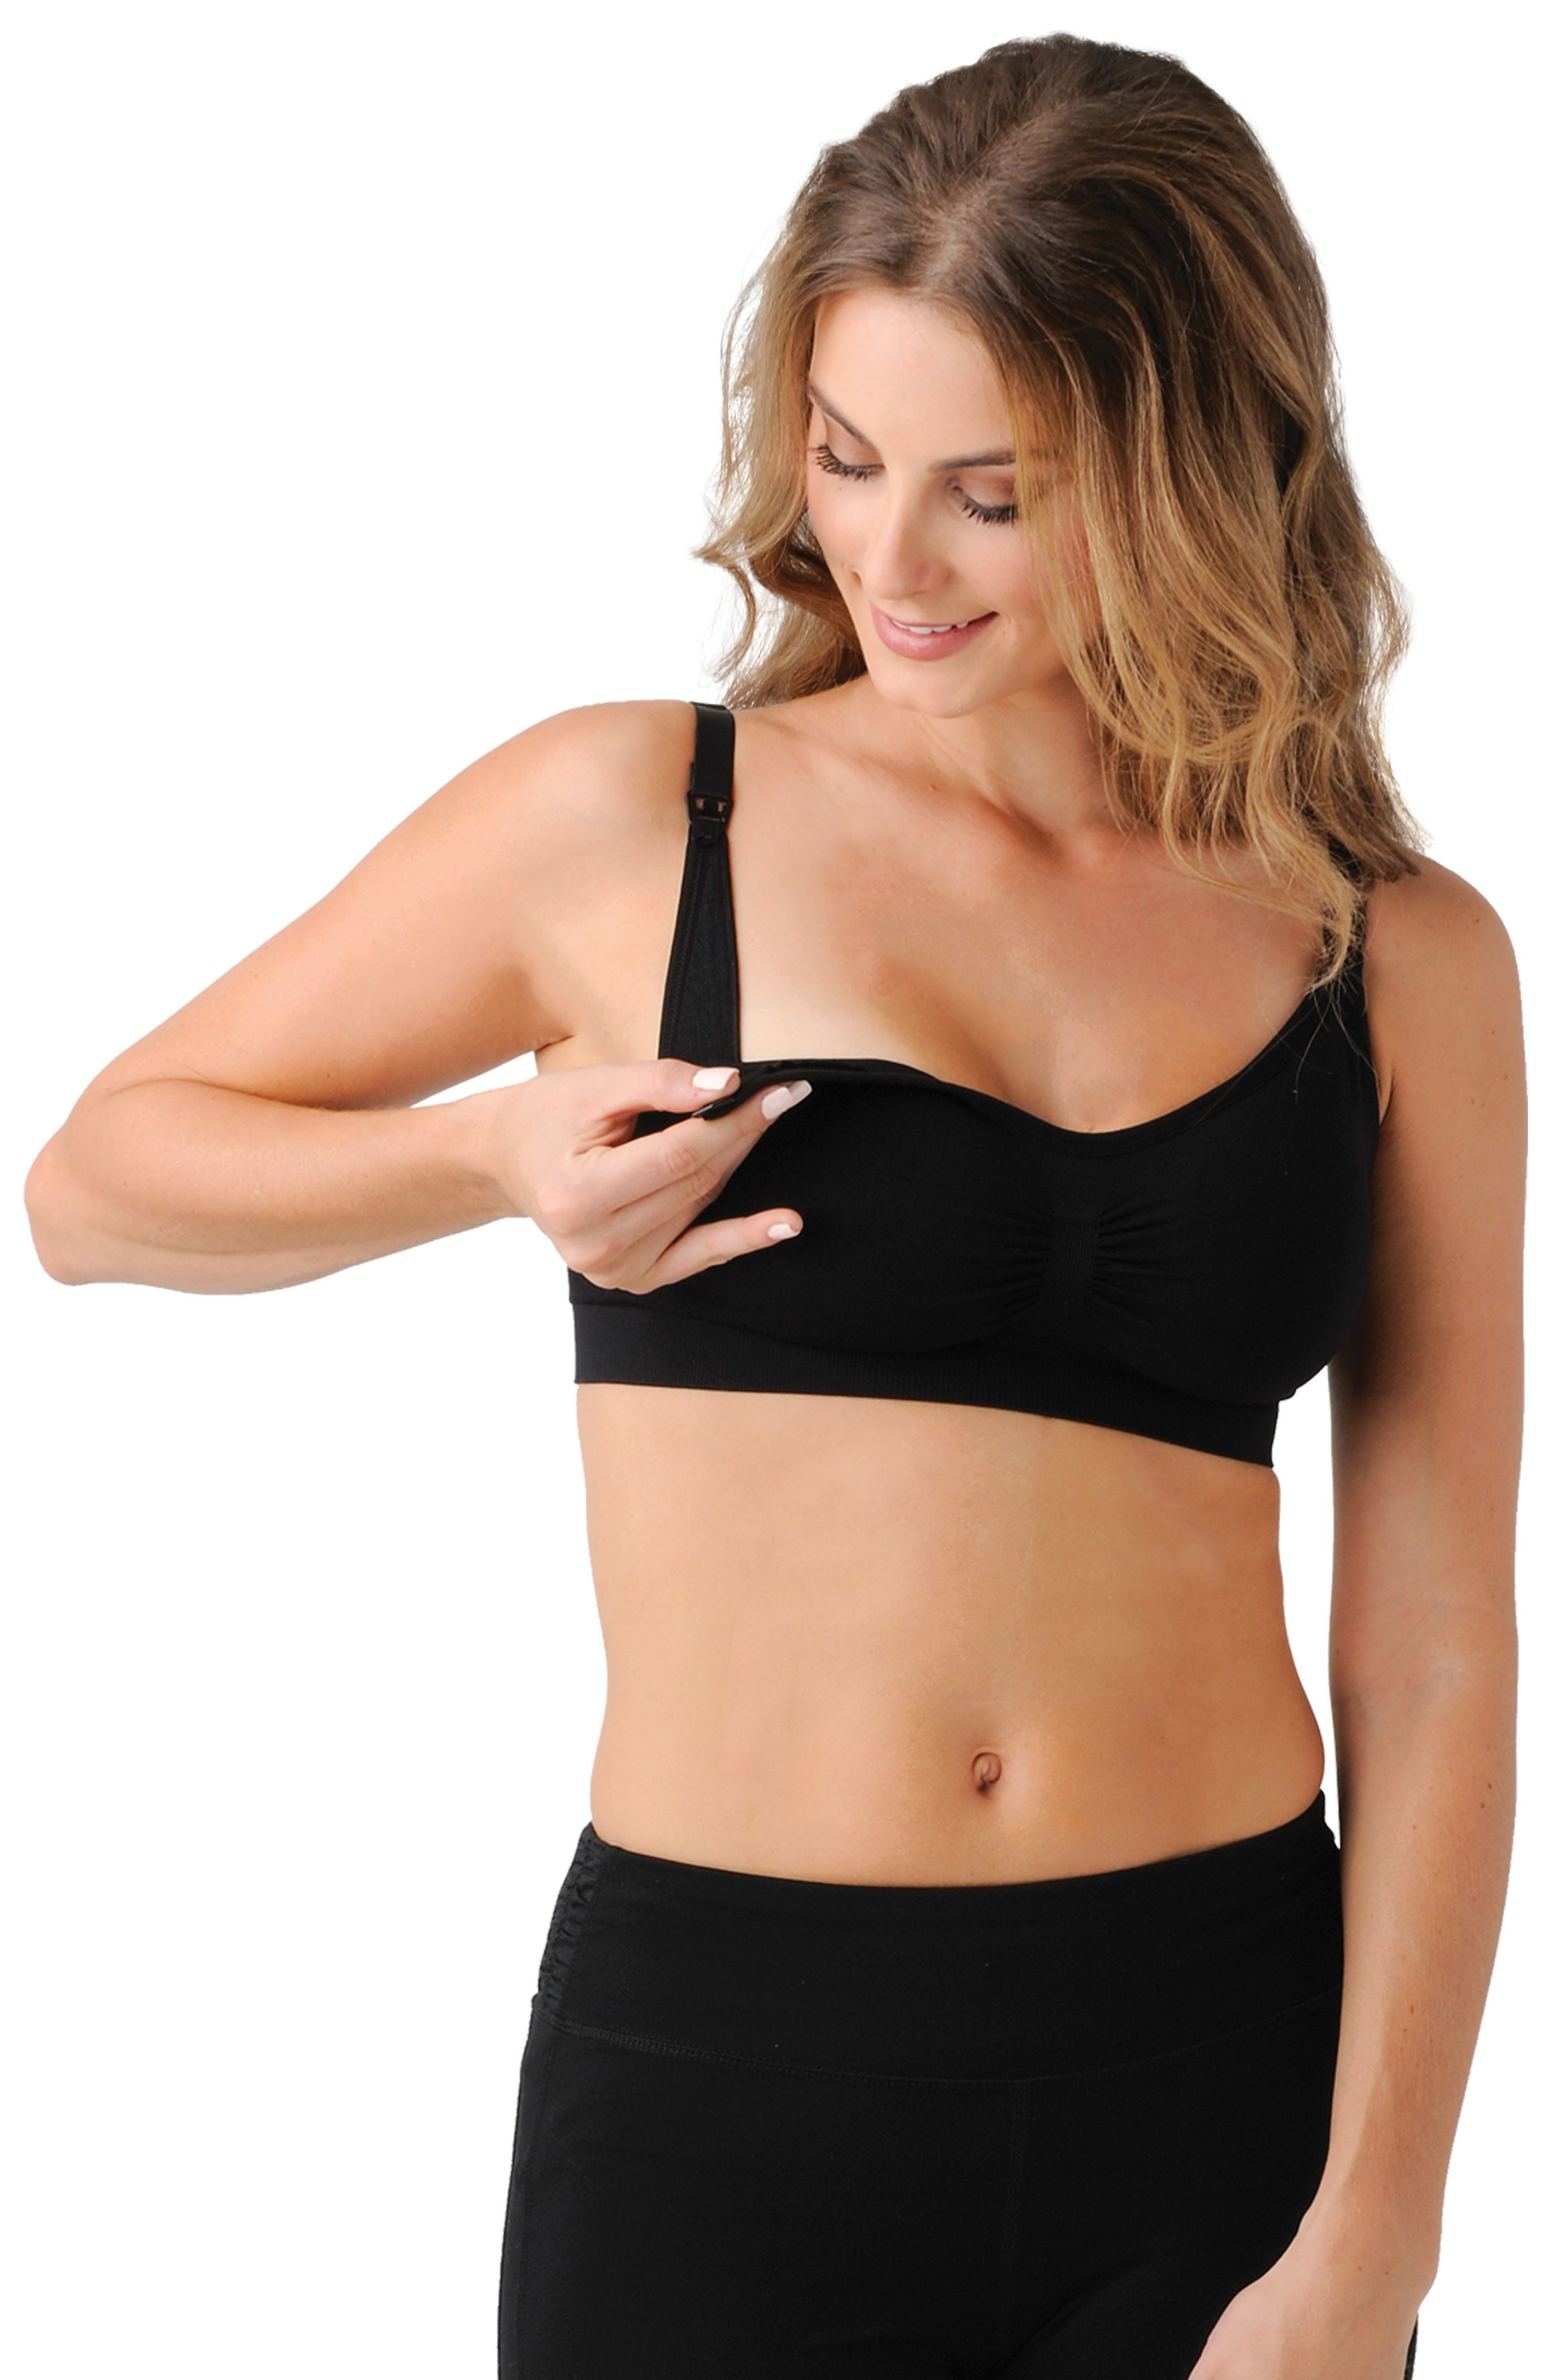 a3bf49610dbff The Bandita Nursing Bra is the best in its clasp! Made from super soft,  breathable stretch fabric, this maternity and nursing bra features a  seamless, ...